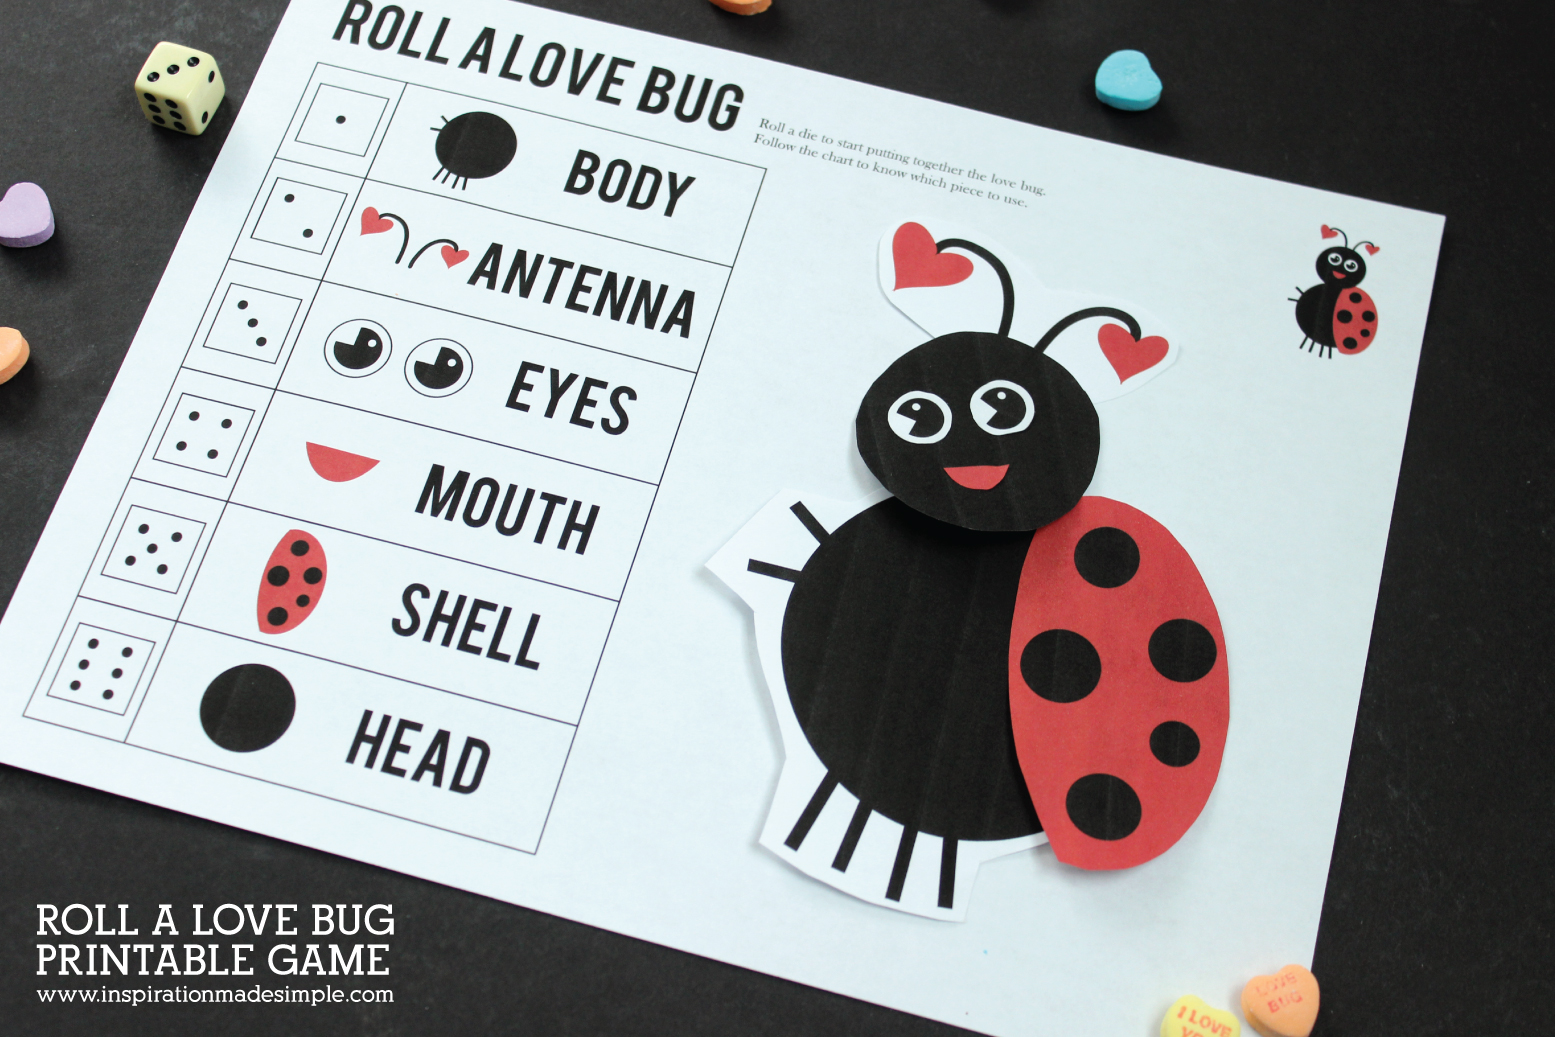 Roll-a-Love Bug Printable Children's Game